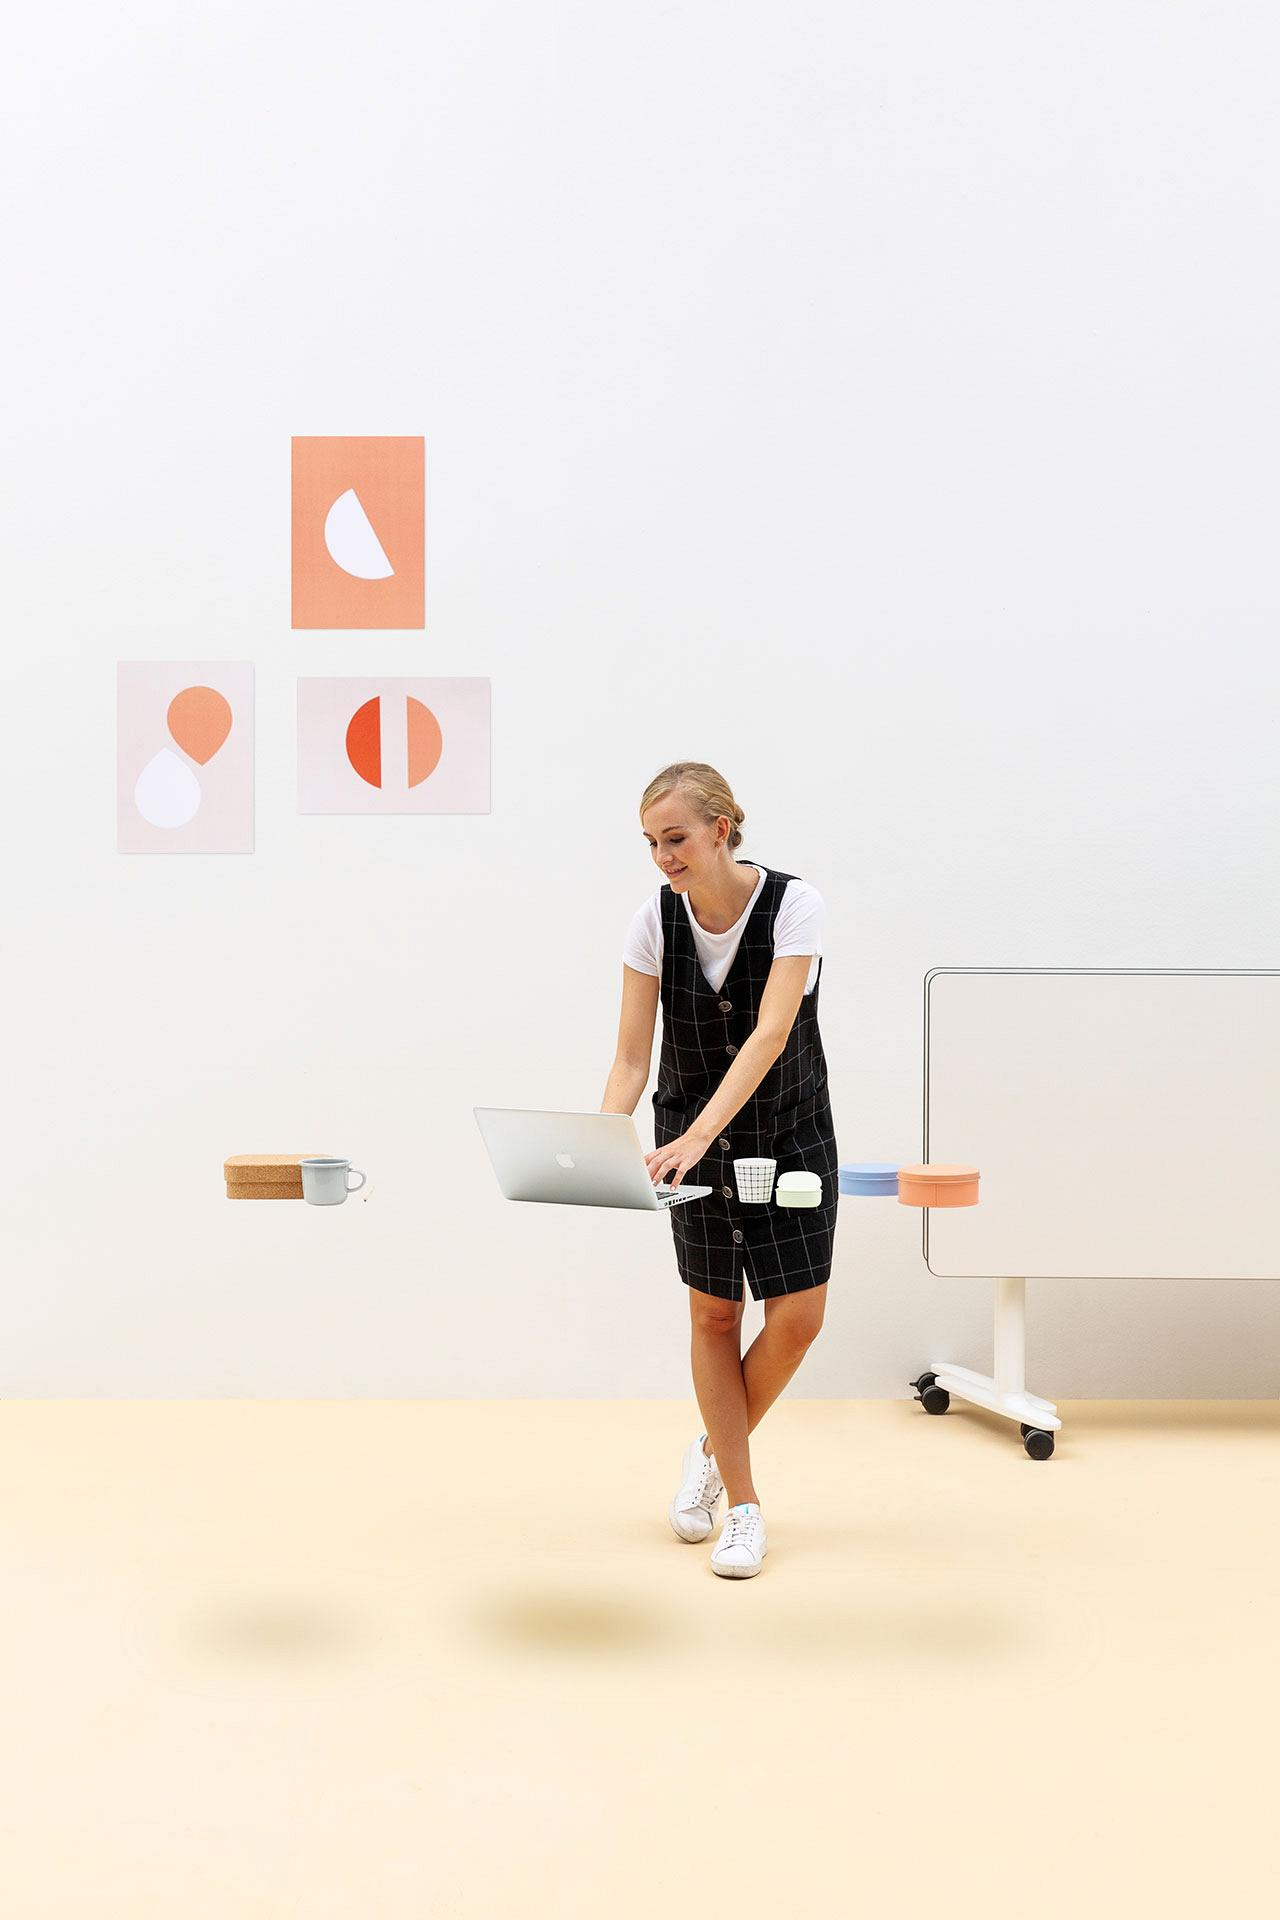 Orgatec 18, user-centred showroom of innovation and well-being 3